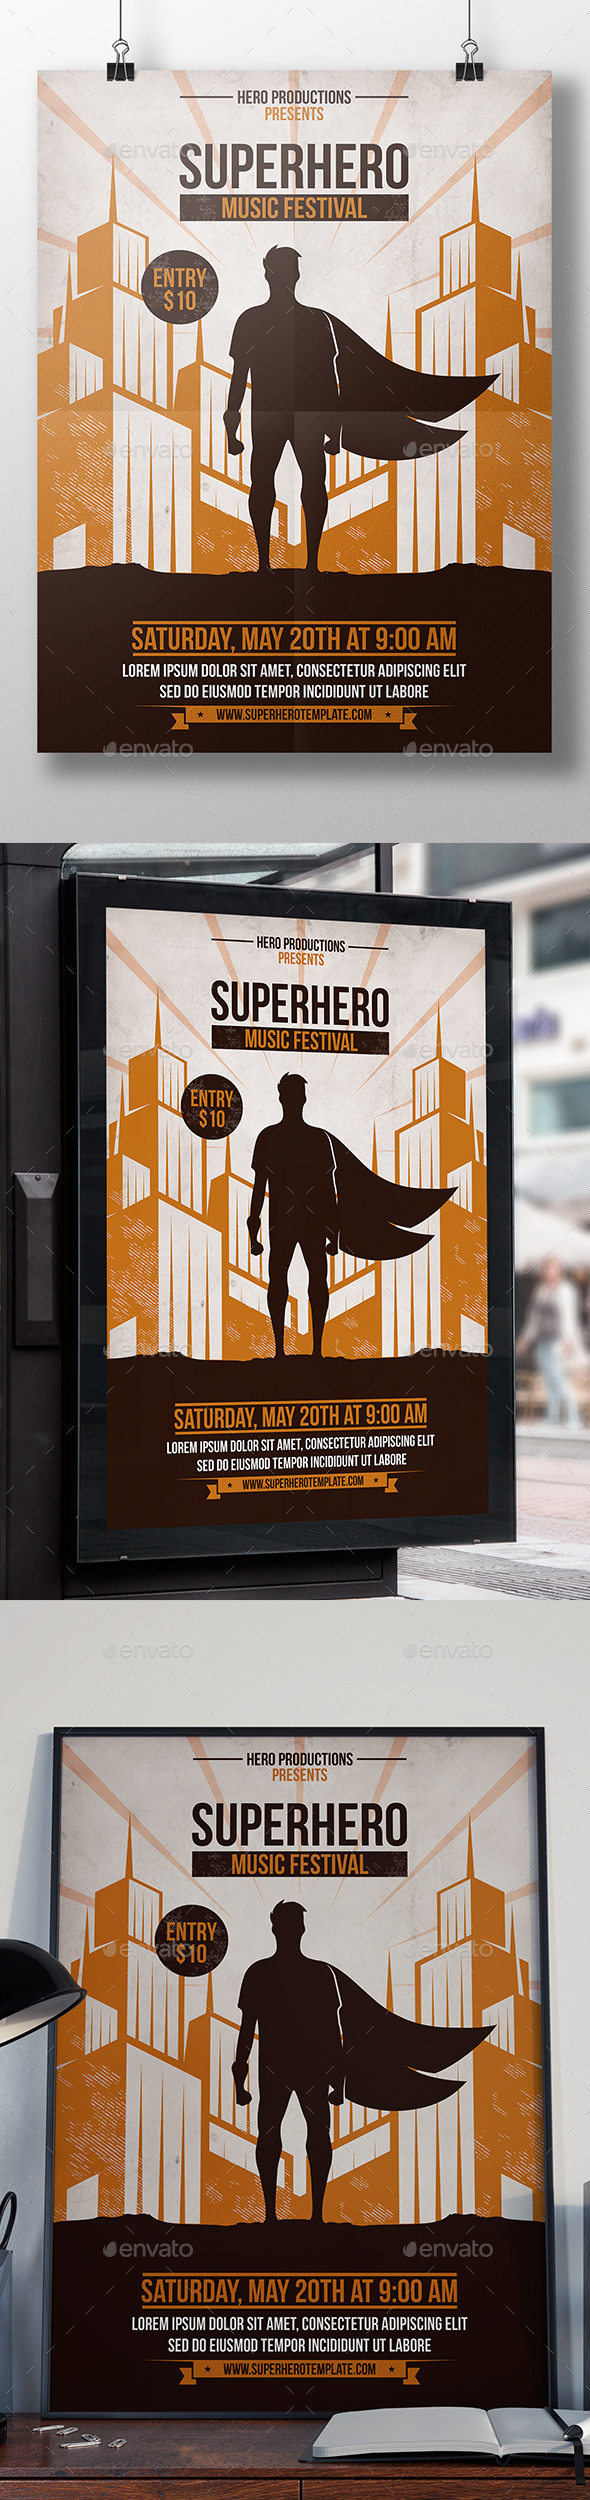 Superhero Party Flyer Template - Clubs & Parties Events